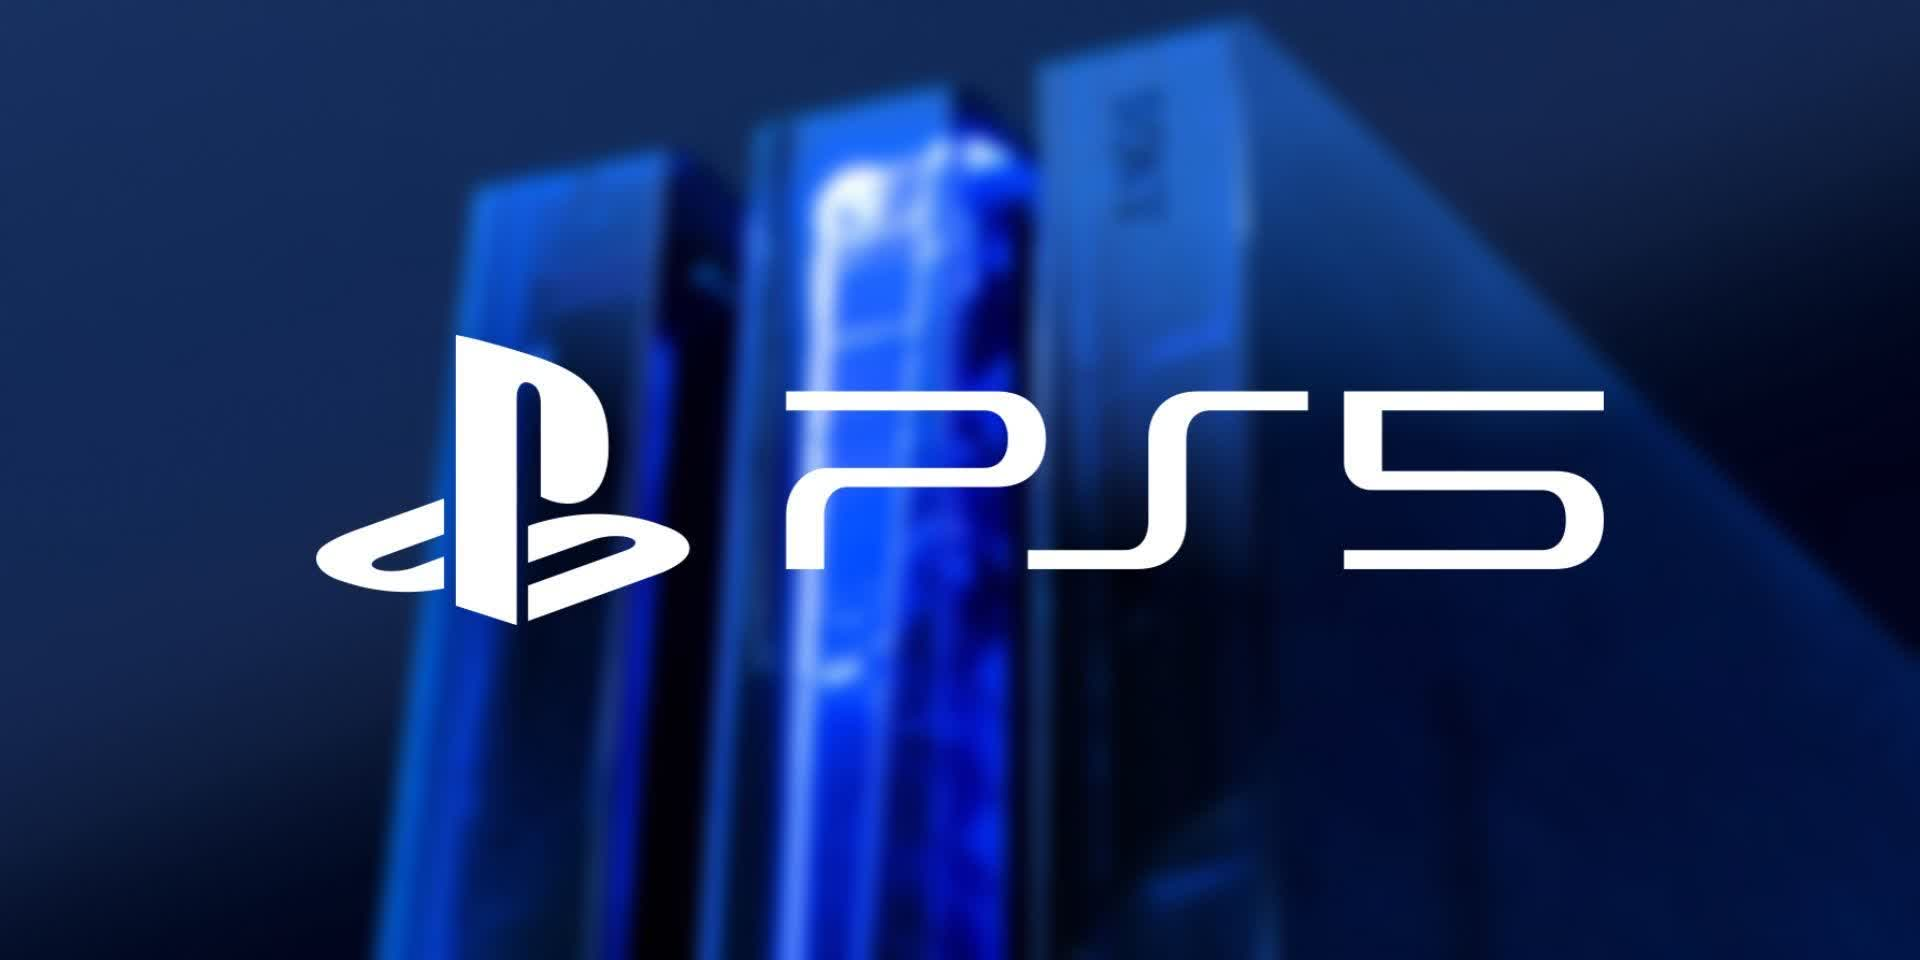 PlayStation 5 will play over 4,000 PS4 games, but some might 'exhibit errors or unexpected behavior'